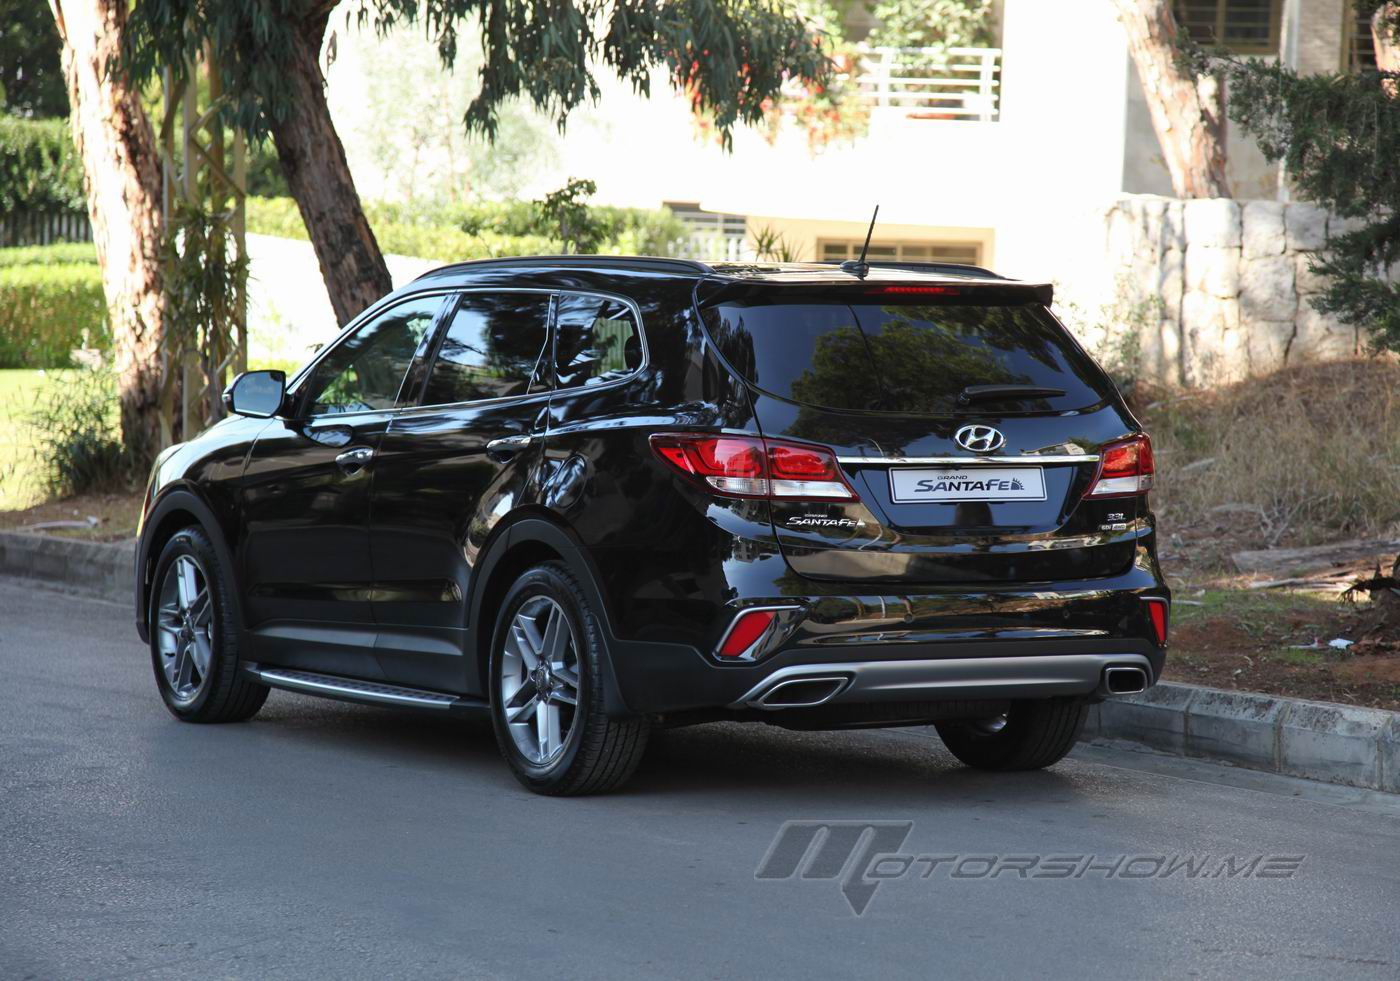 2017 hyundai grand santafe dynamic driving experience for every road. Black Bedroom Furniture Sets. Home Design Ideas